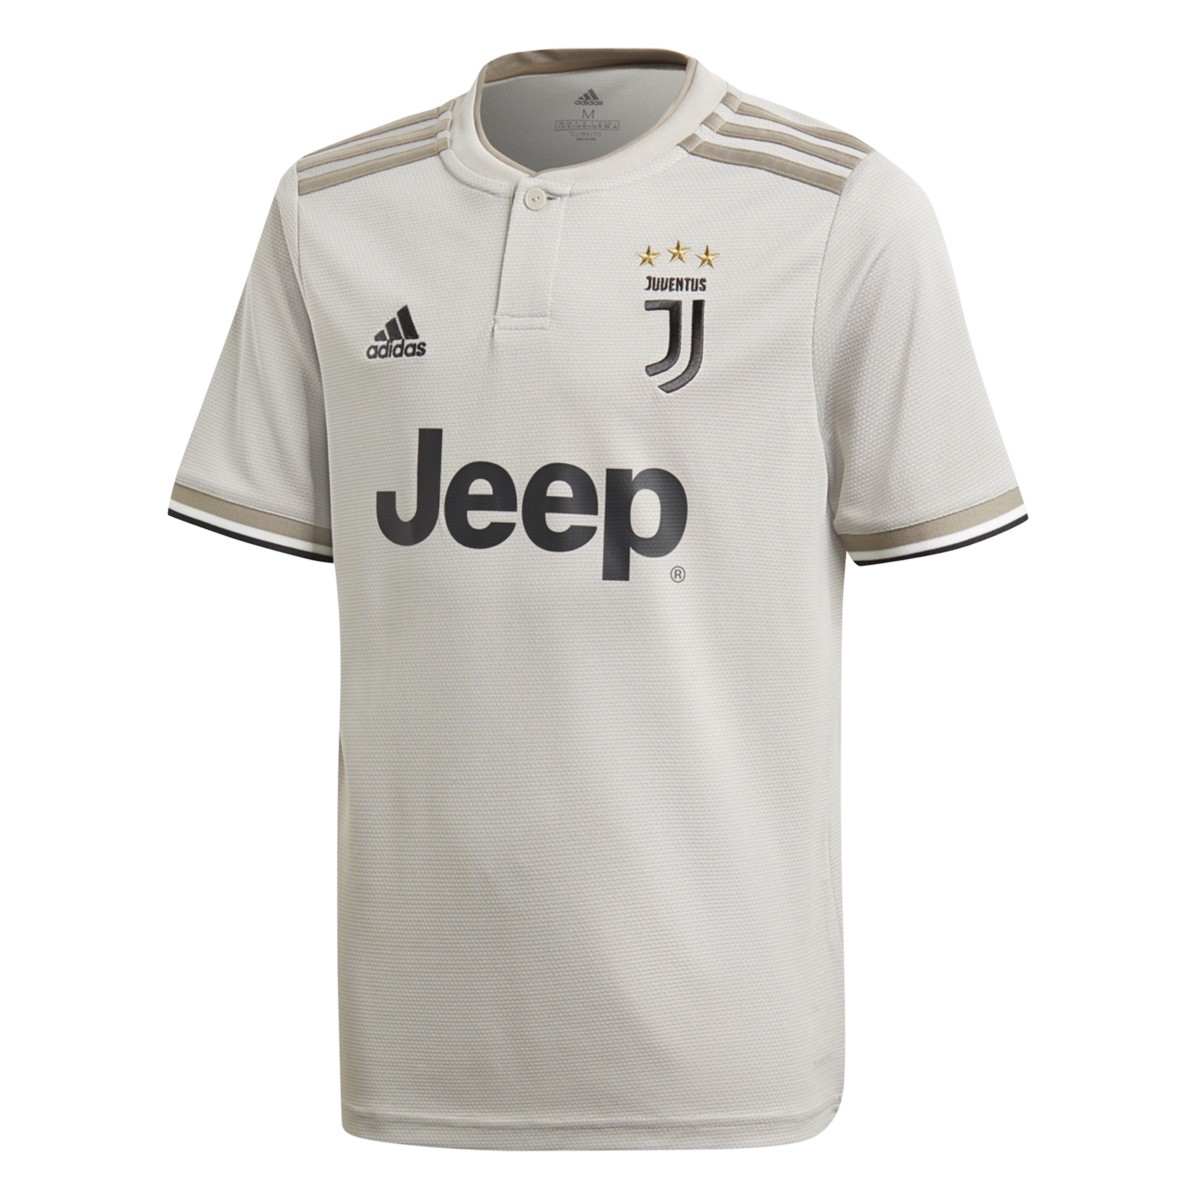 1e34c58f92e Jersey adidas Kids Juventus 2018-2019 Away Sesame-Clay - Football store  Fútbol Emotion